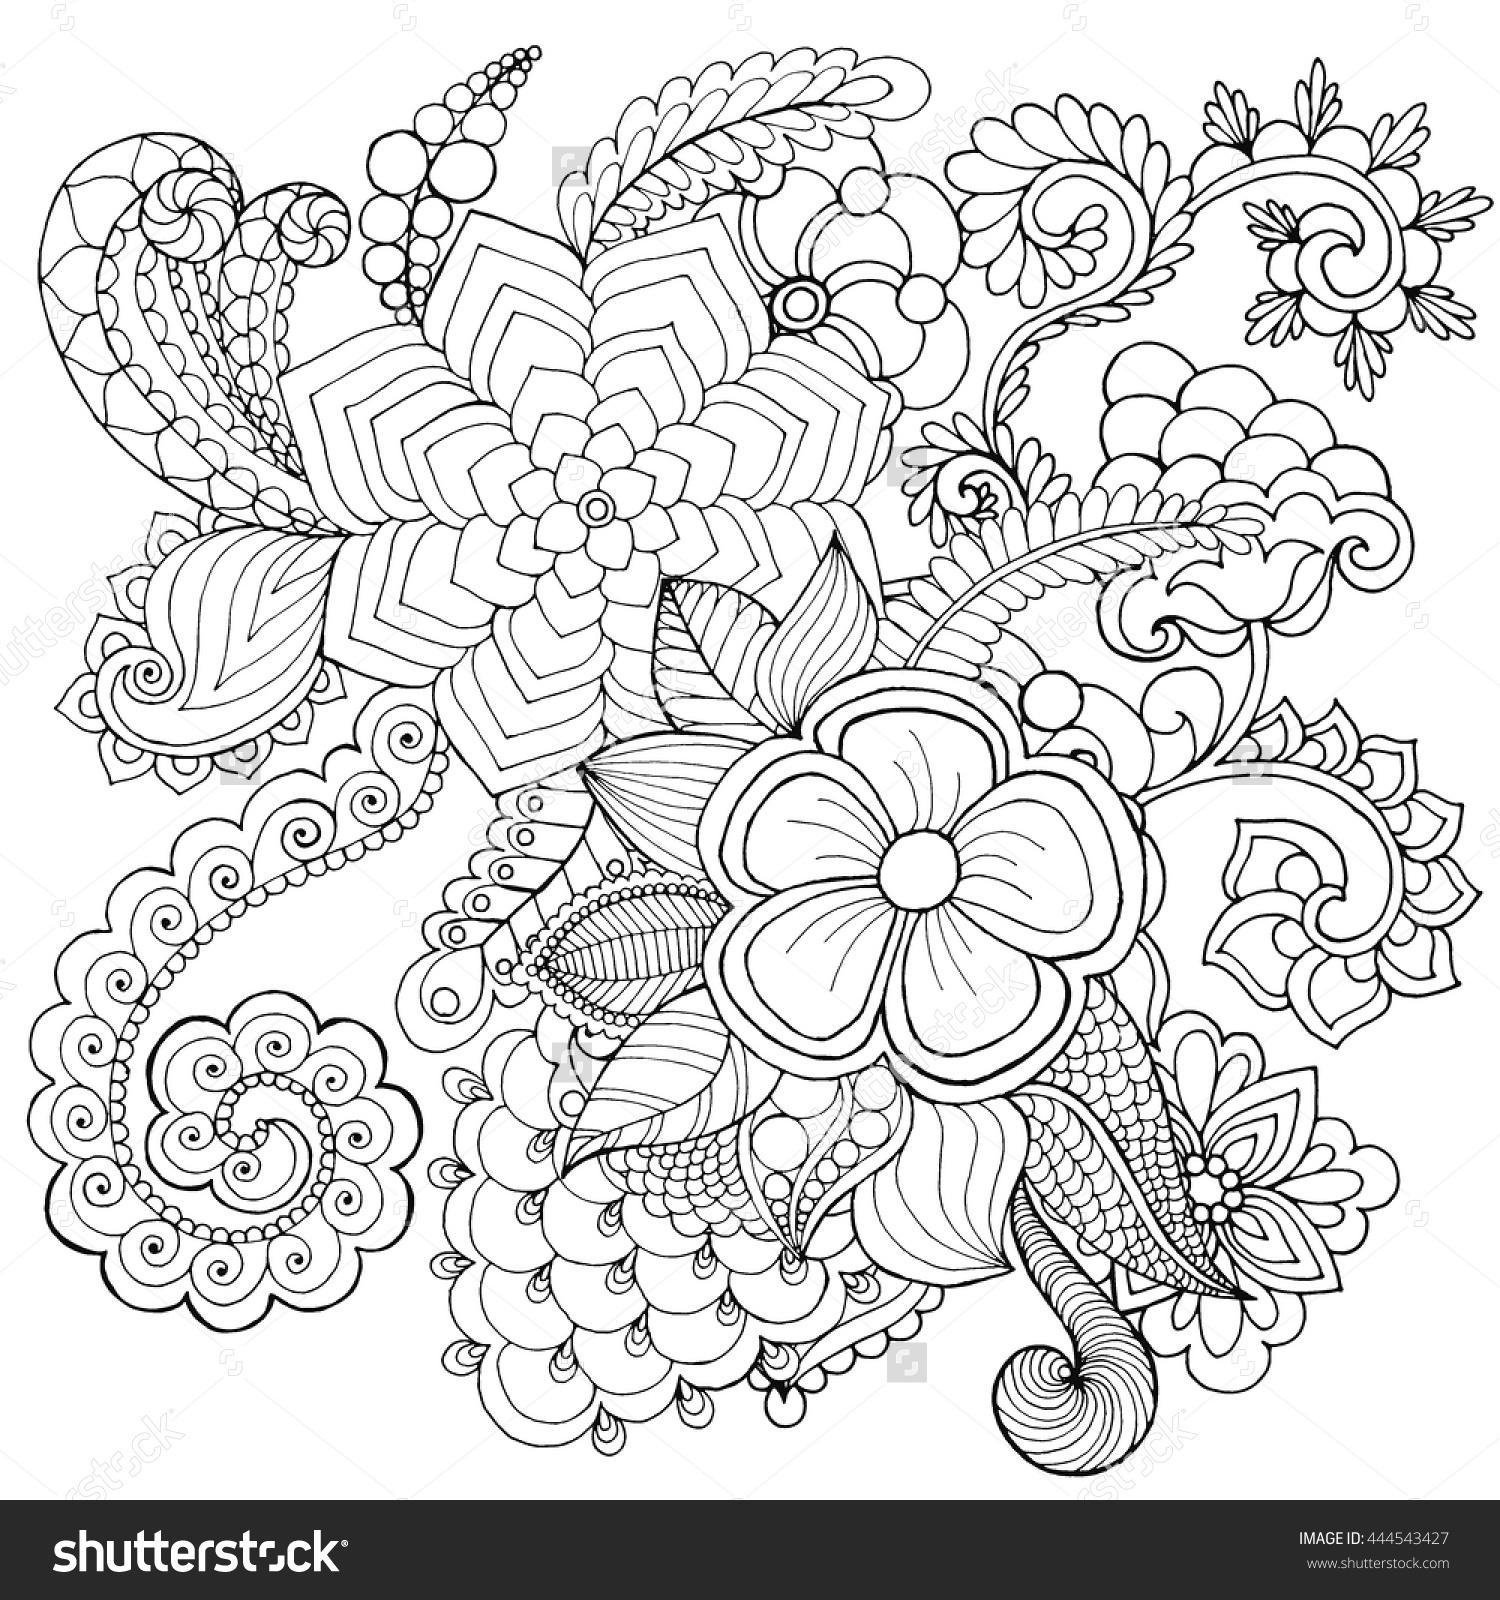 1500x1600 Astonishing Zentangle Flower Coloring Page Fun Picture Of Styles